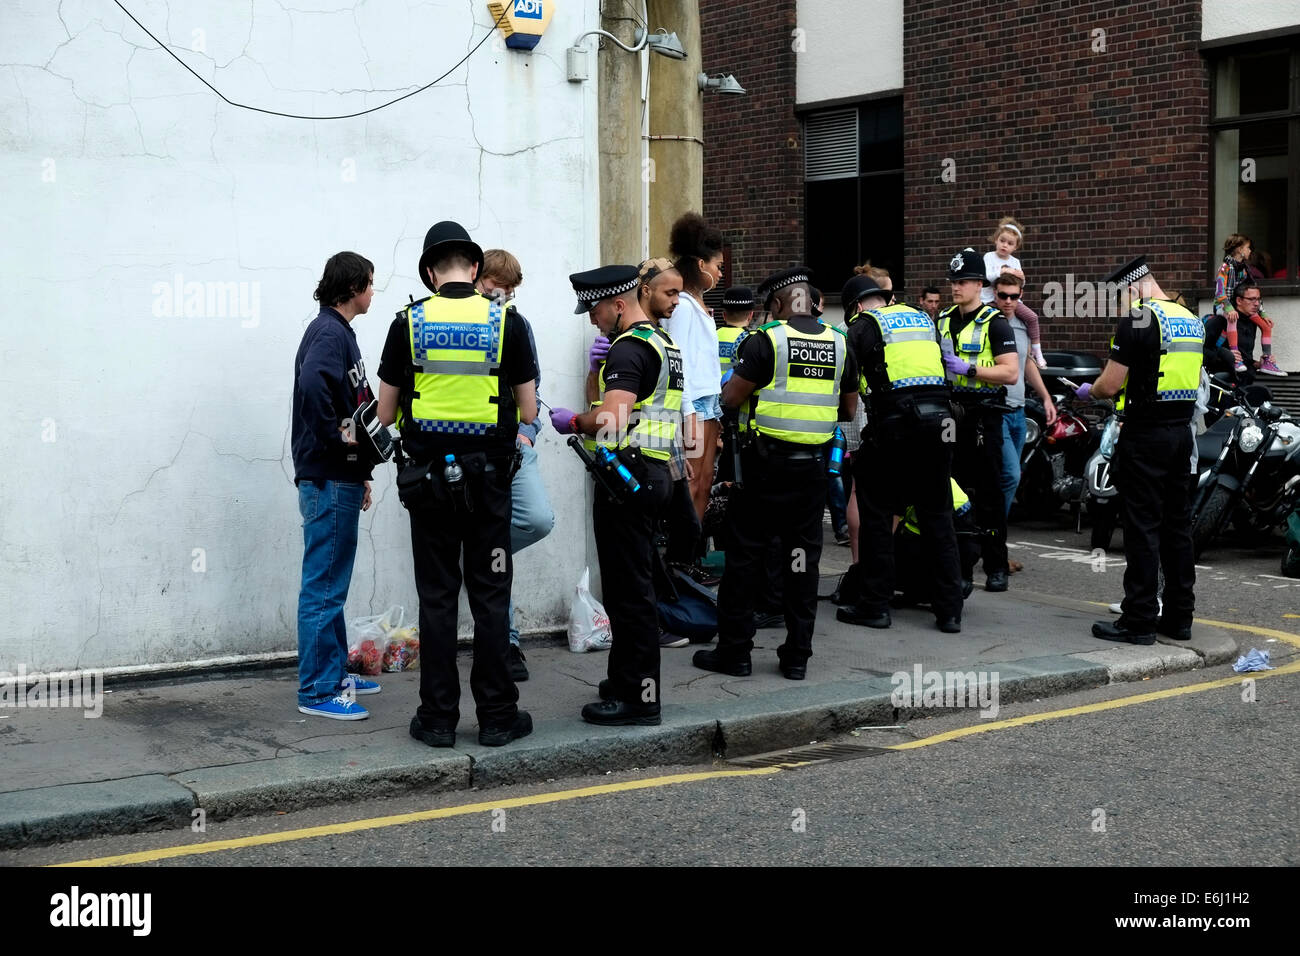 London, UK. 24th August, 2014. Notting Hill Carnival 2014. Police carry out stop and search on young Carnival goers - Stock Image